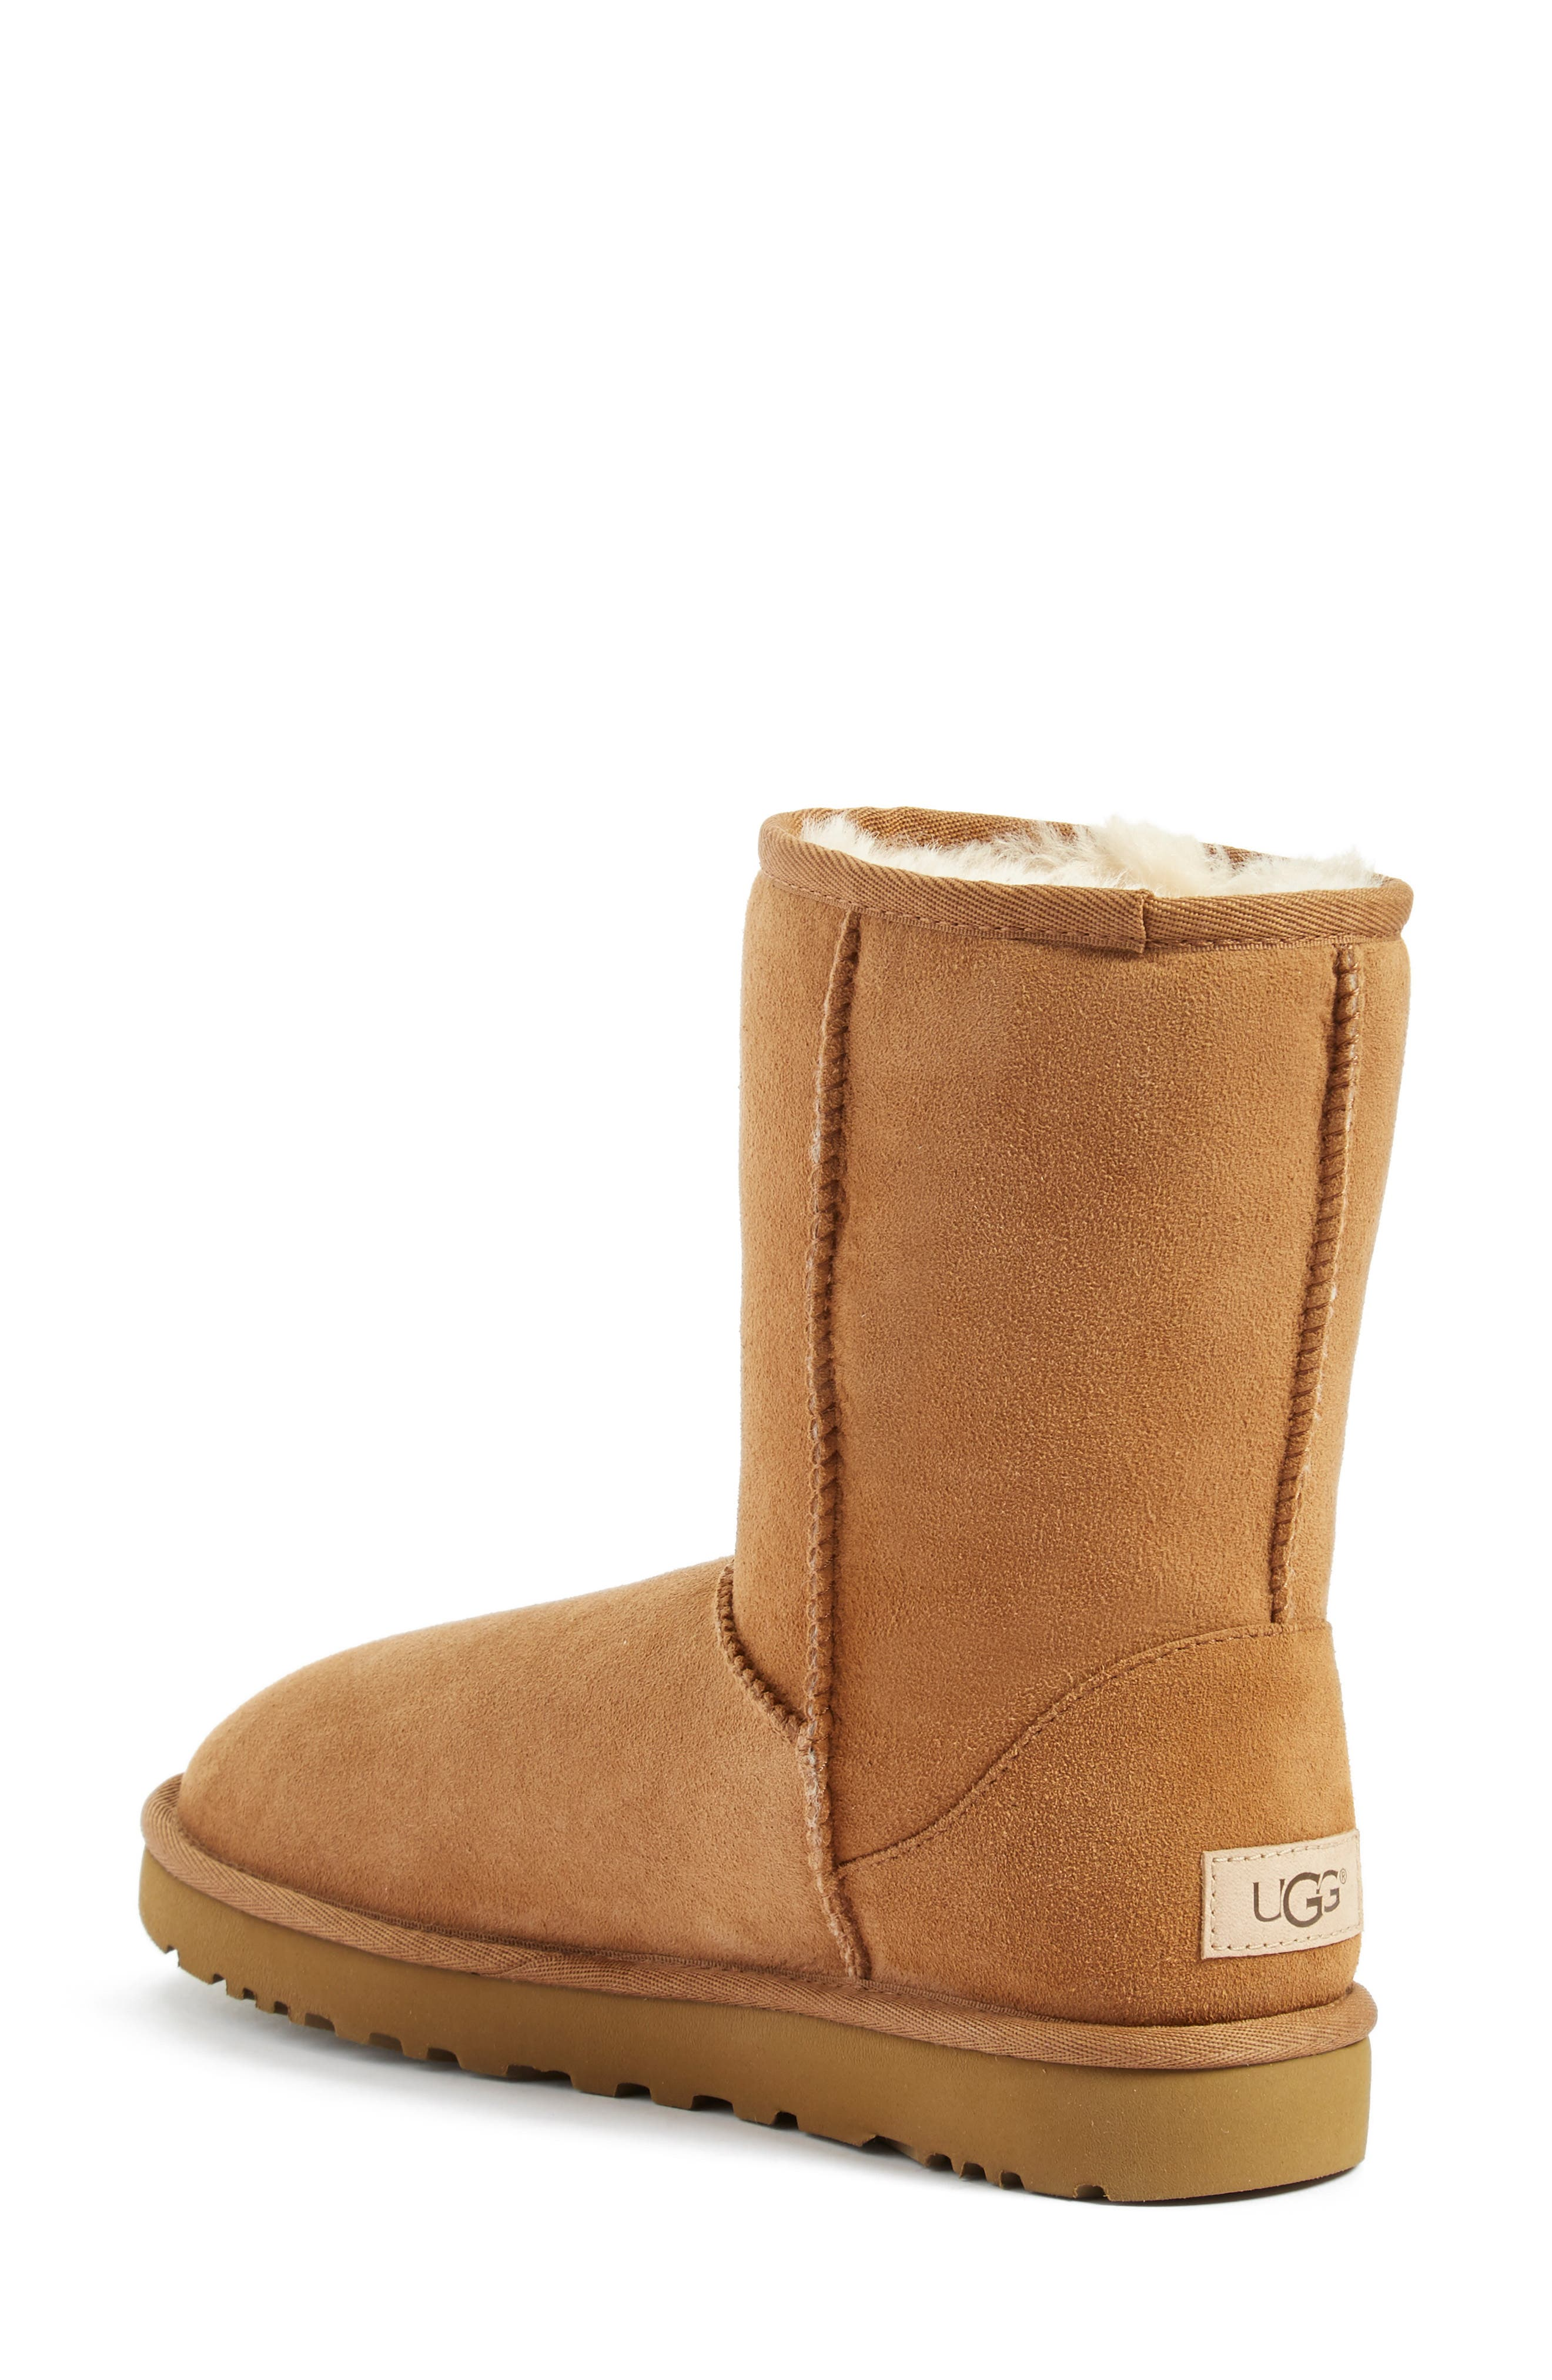 UGG<SUP>®</SUP>, Classic II Genuine Shearling Lined Short Boot, Alternate thumbnail 2, color, CHESTNUT SUEDE